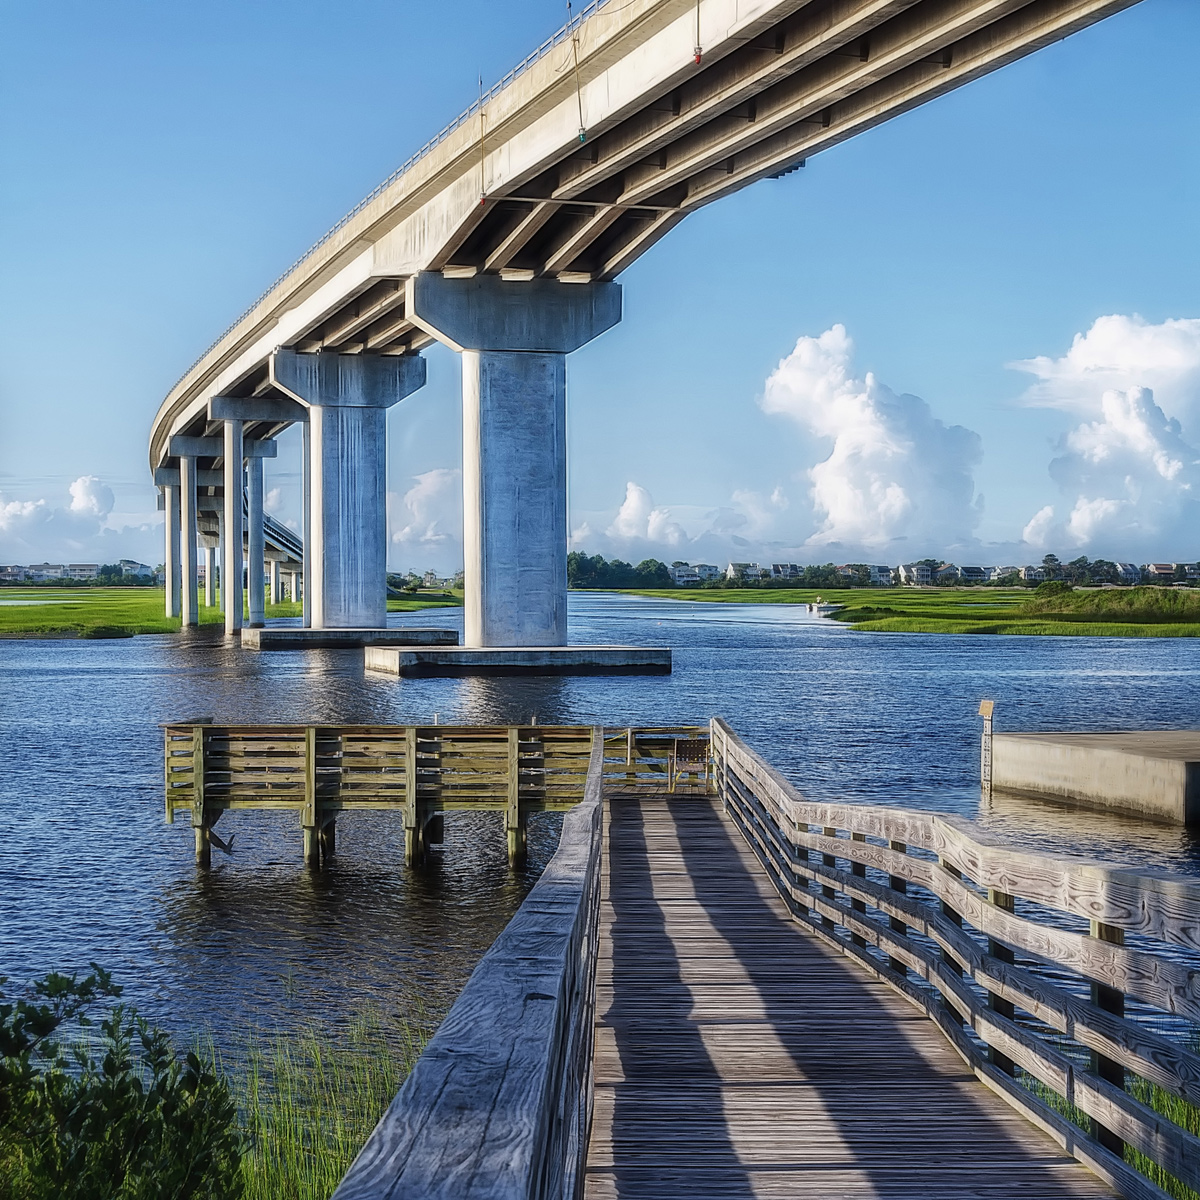 Spanning The Intracoastal